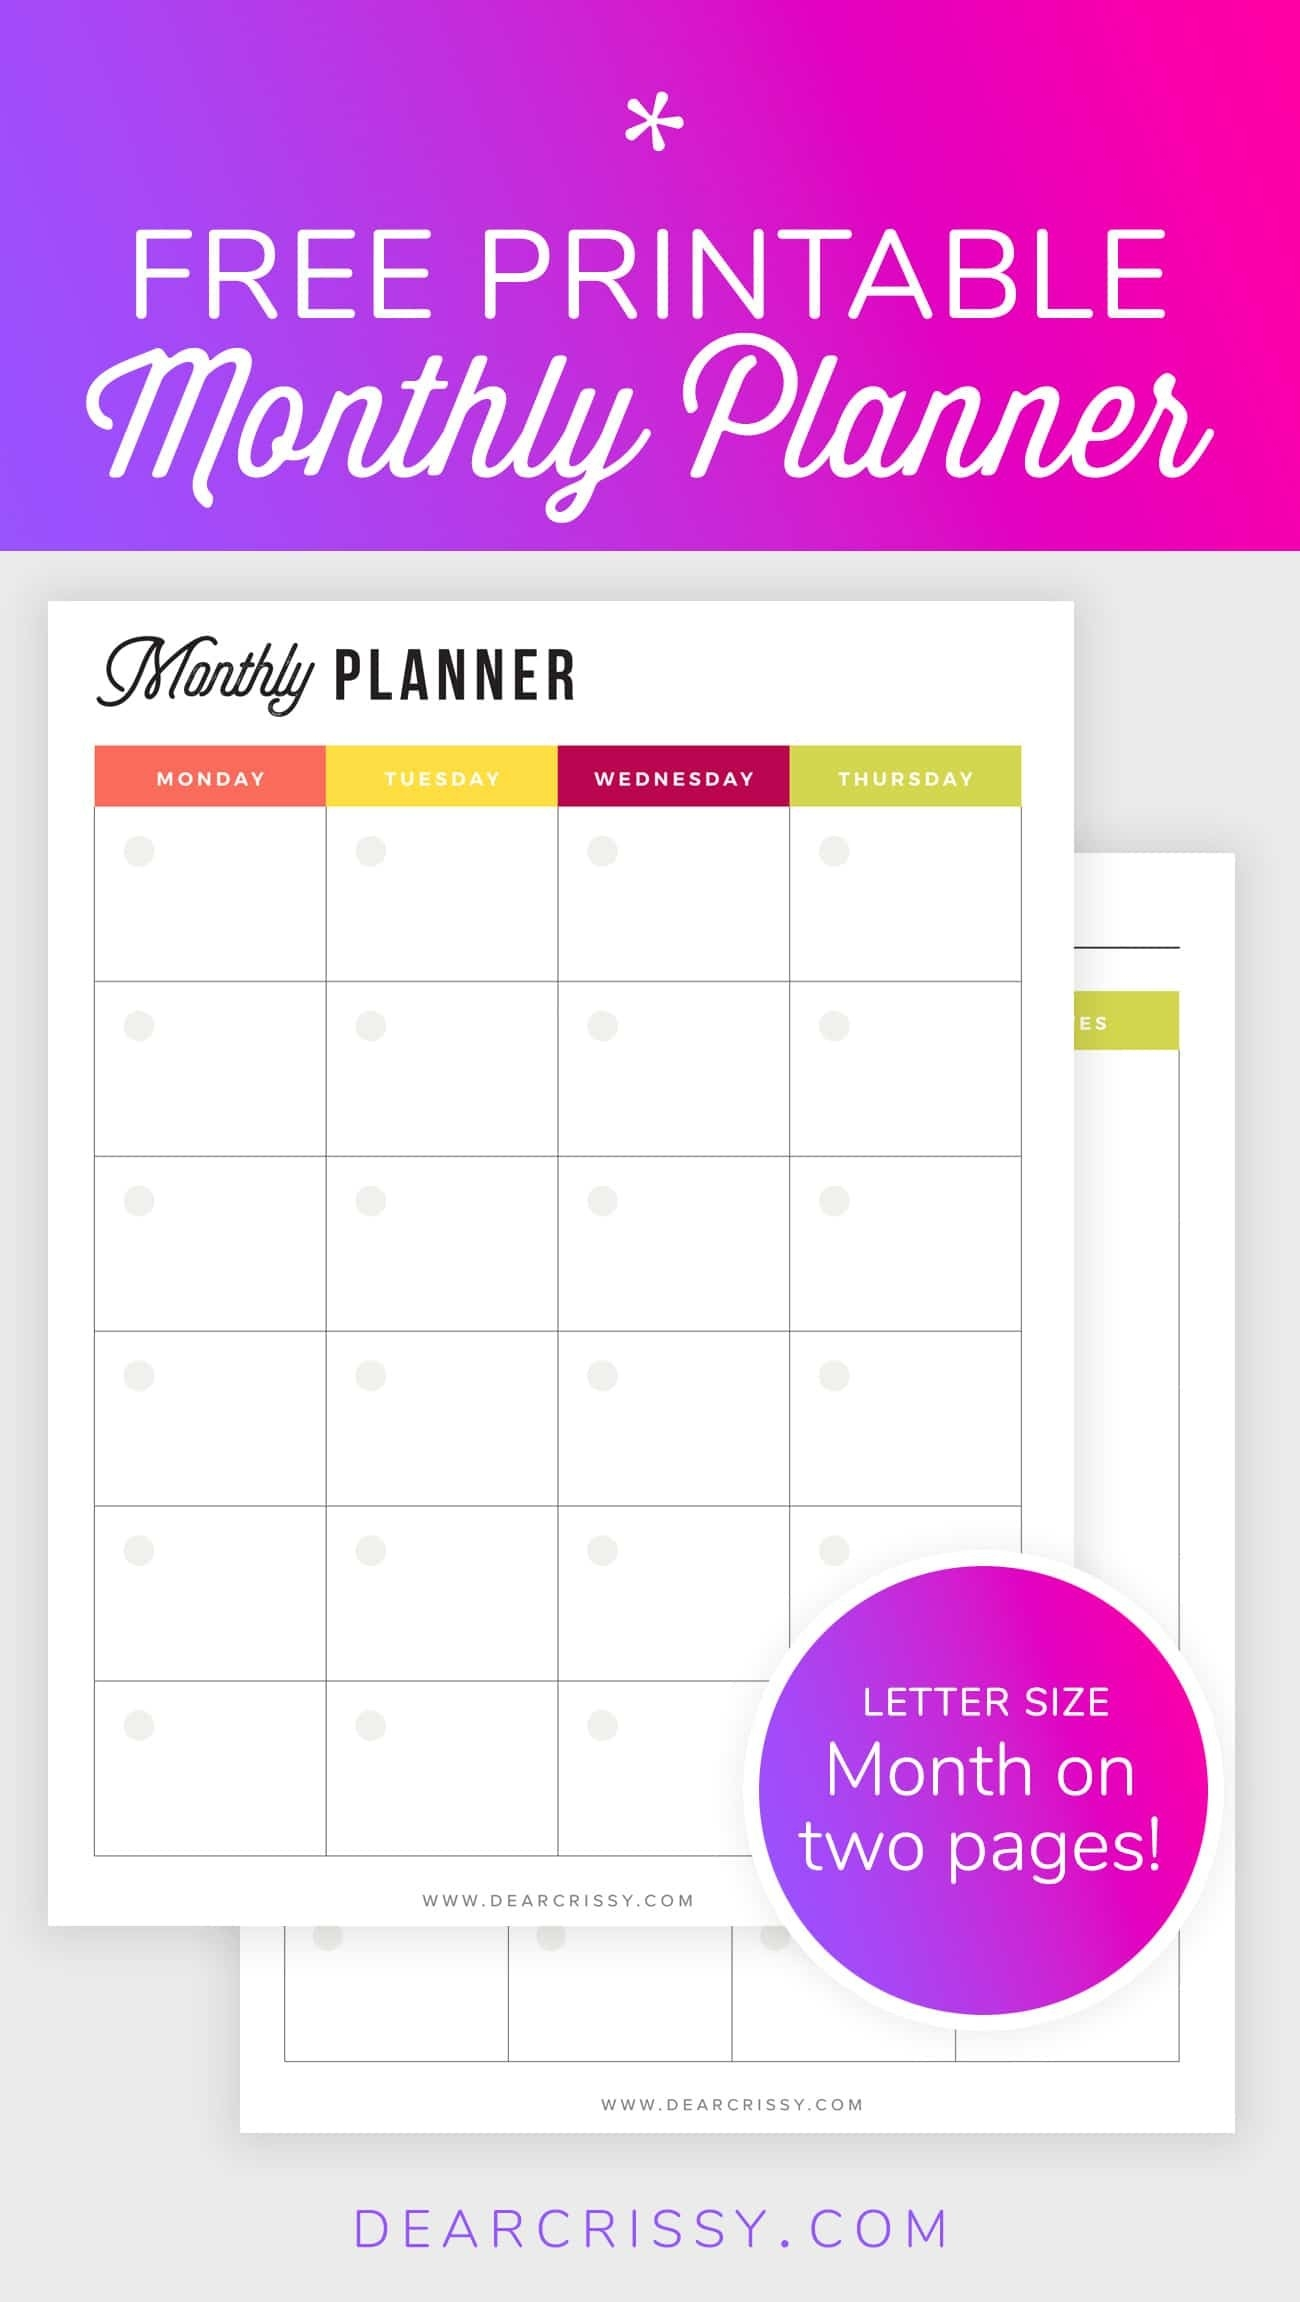 Free Printable Monthly Planner - Mo2P Letter Size Planner-Free Two Page Monthly Planner Templates